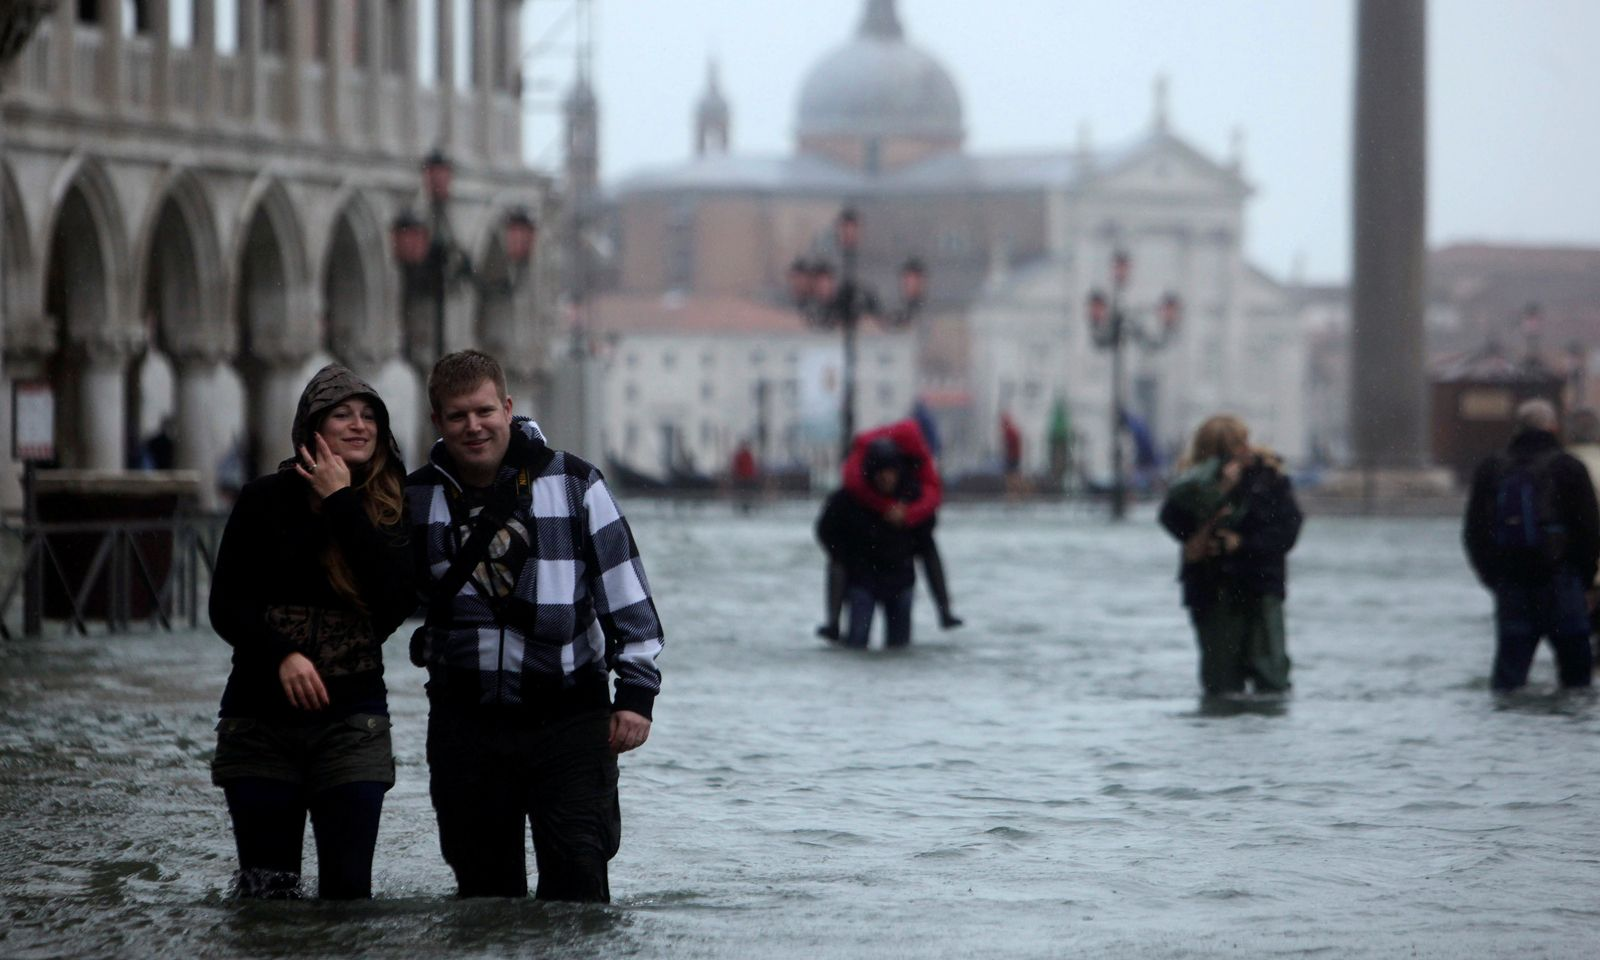 FILE PHOTO: People walk through a flooded street during a period of seasonal high water in Venice